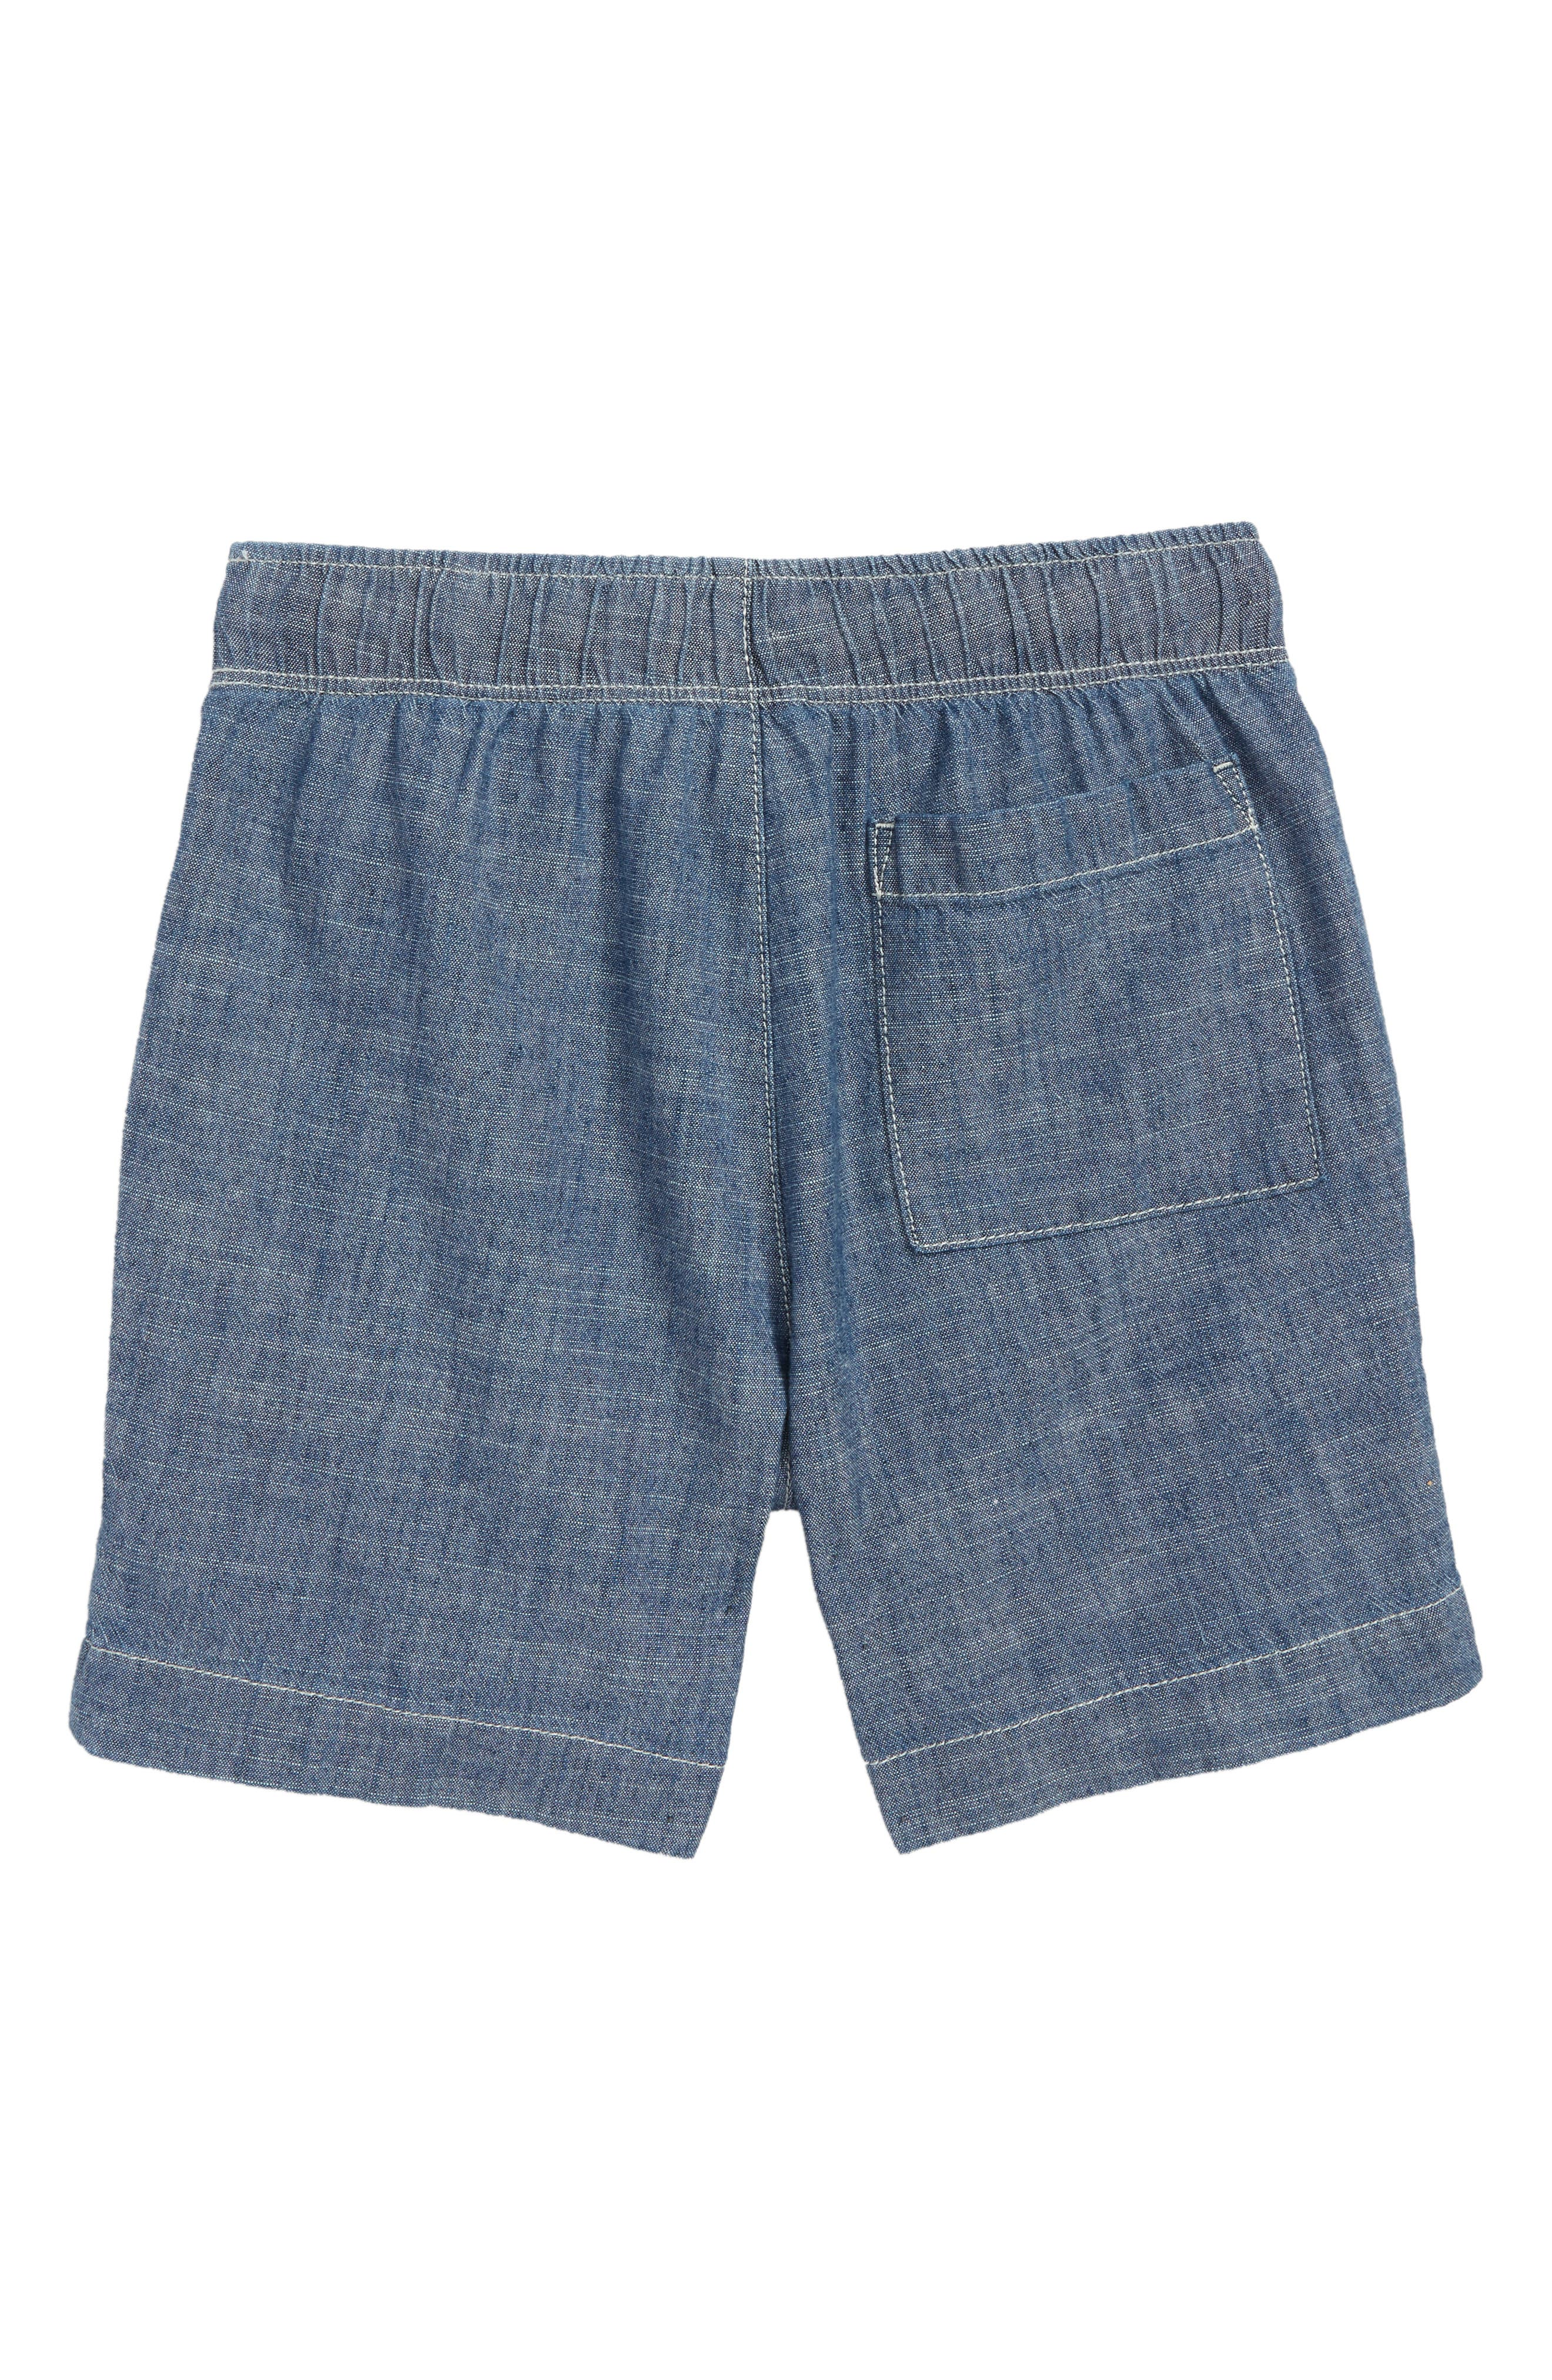 Dock Chambray Shorts,                             Alternate thumbnail 2, color,                             Atlantic Wash